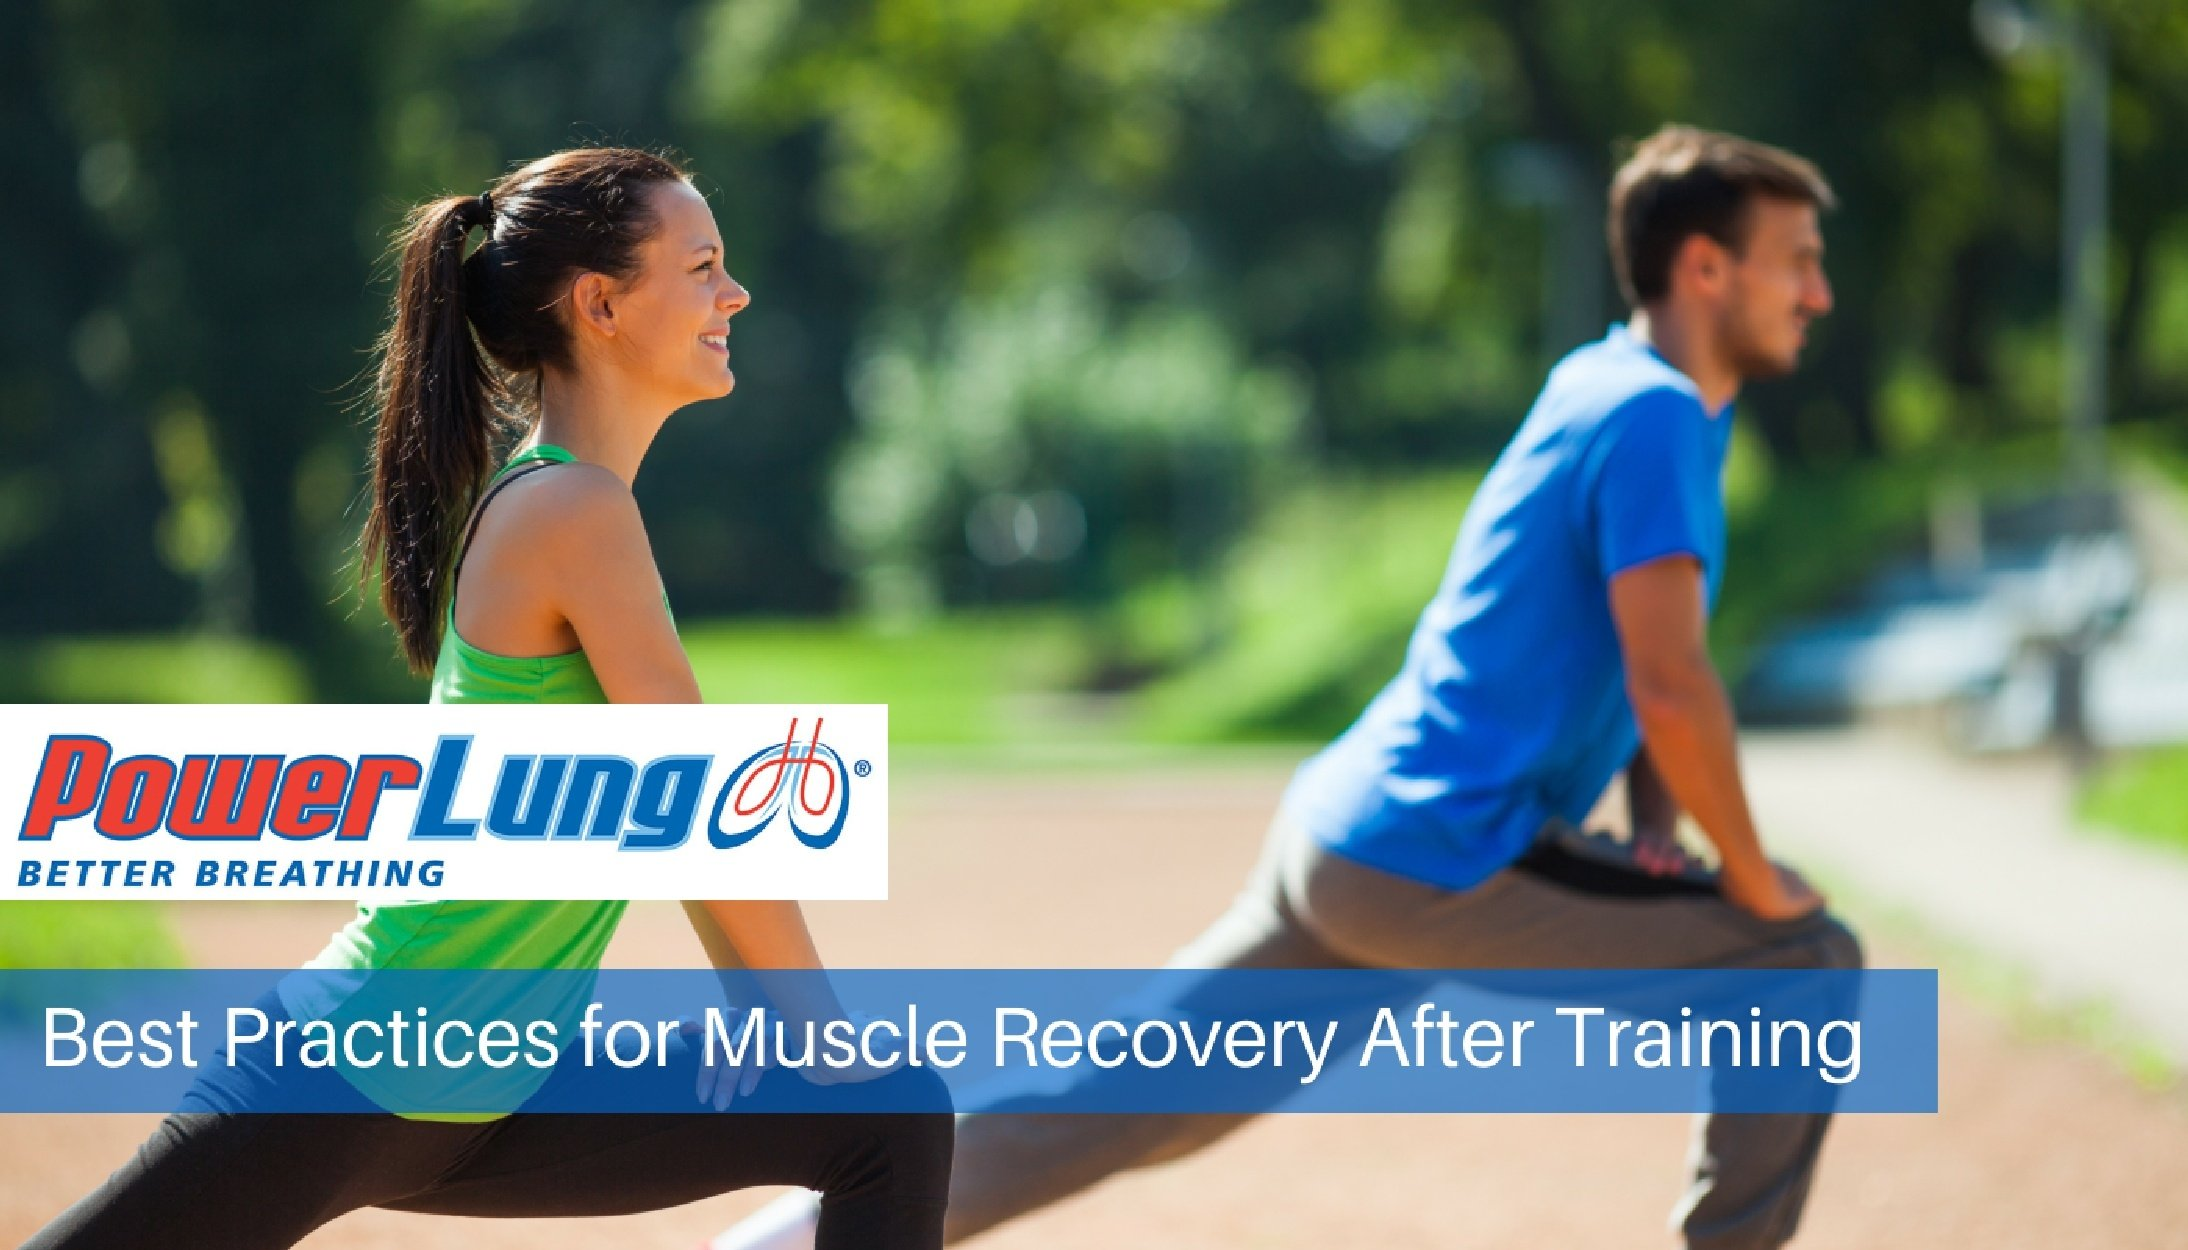 PowerLung - Best Practices for Muscle Recovery After Training.jpg